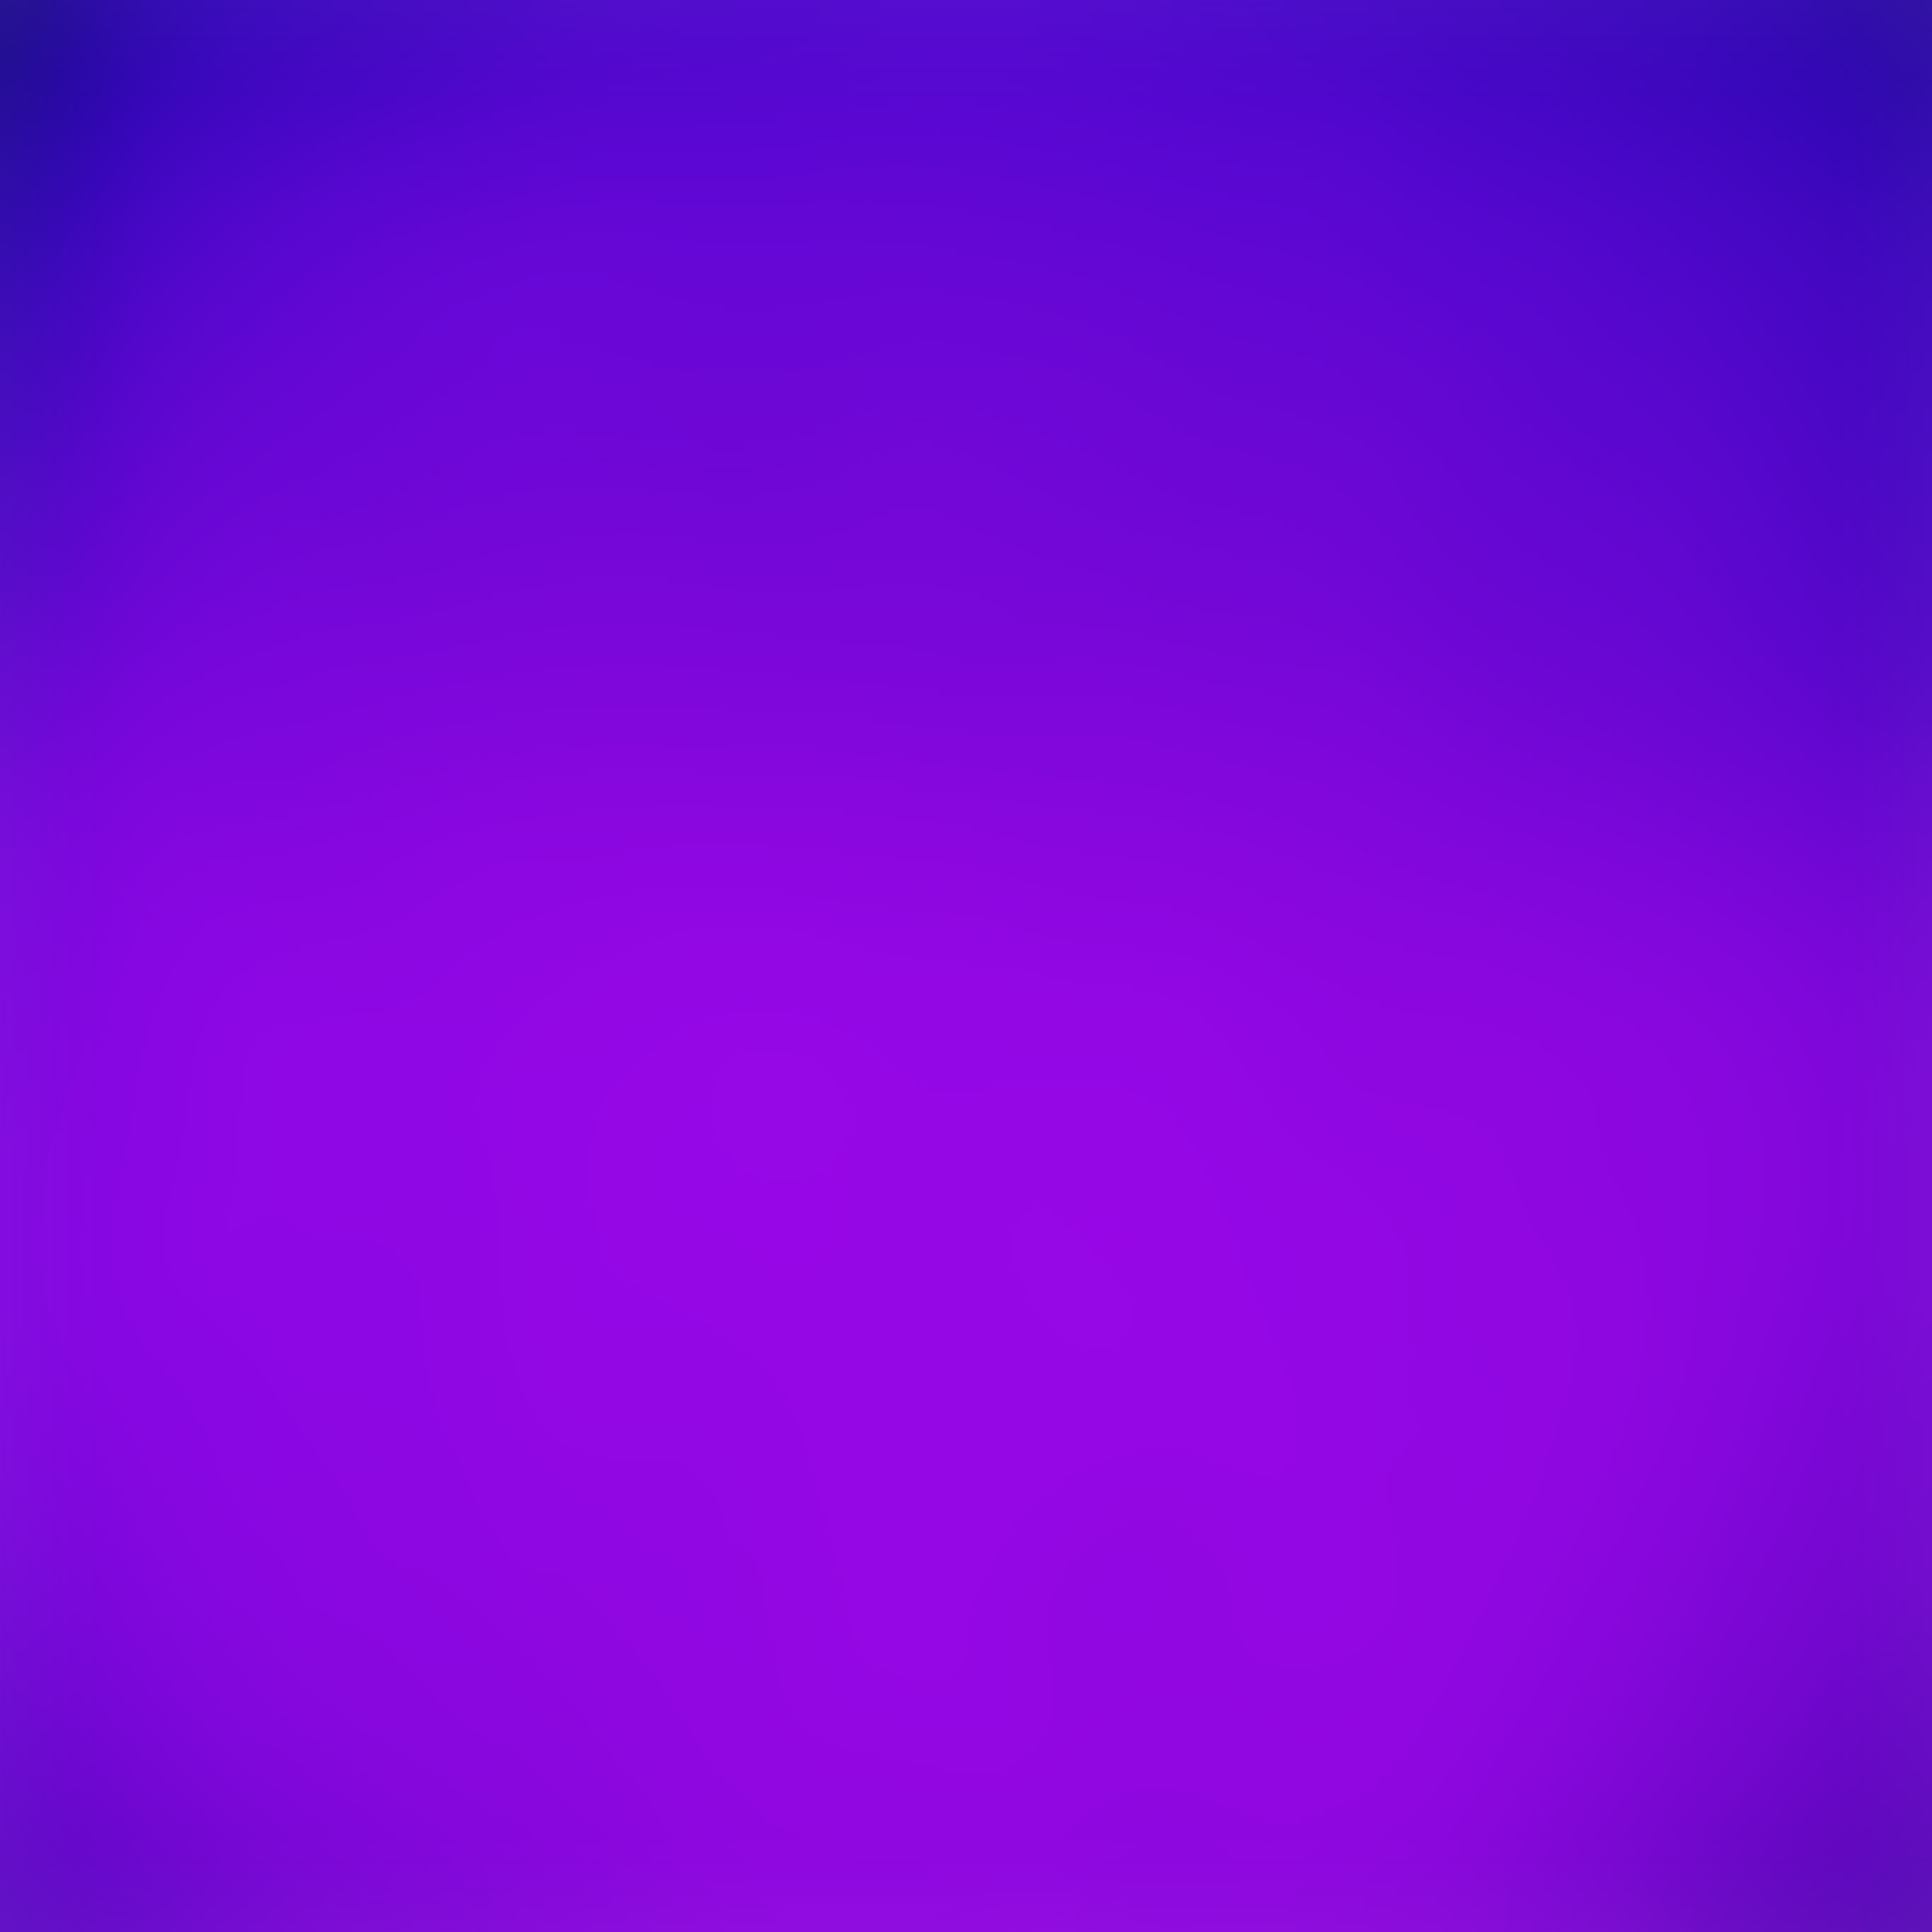 Galaxy S4 Fall Wallpaper Papers Co Android Wallpaper Sk20 Blue Purple Blur